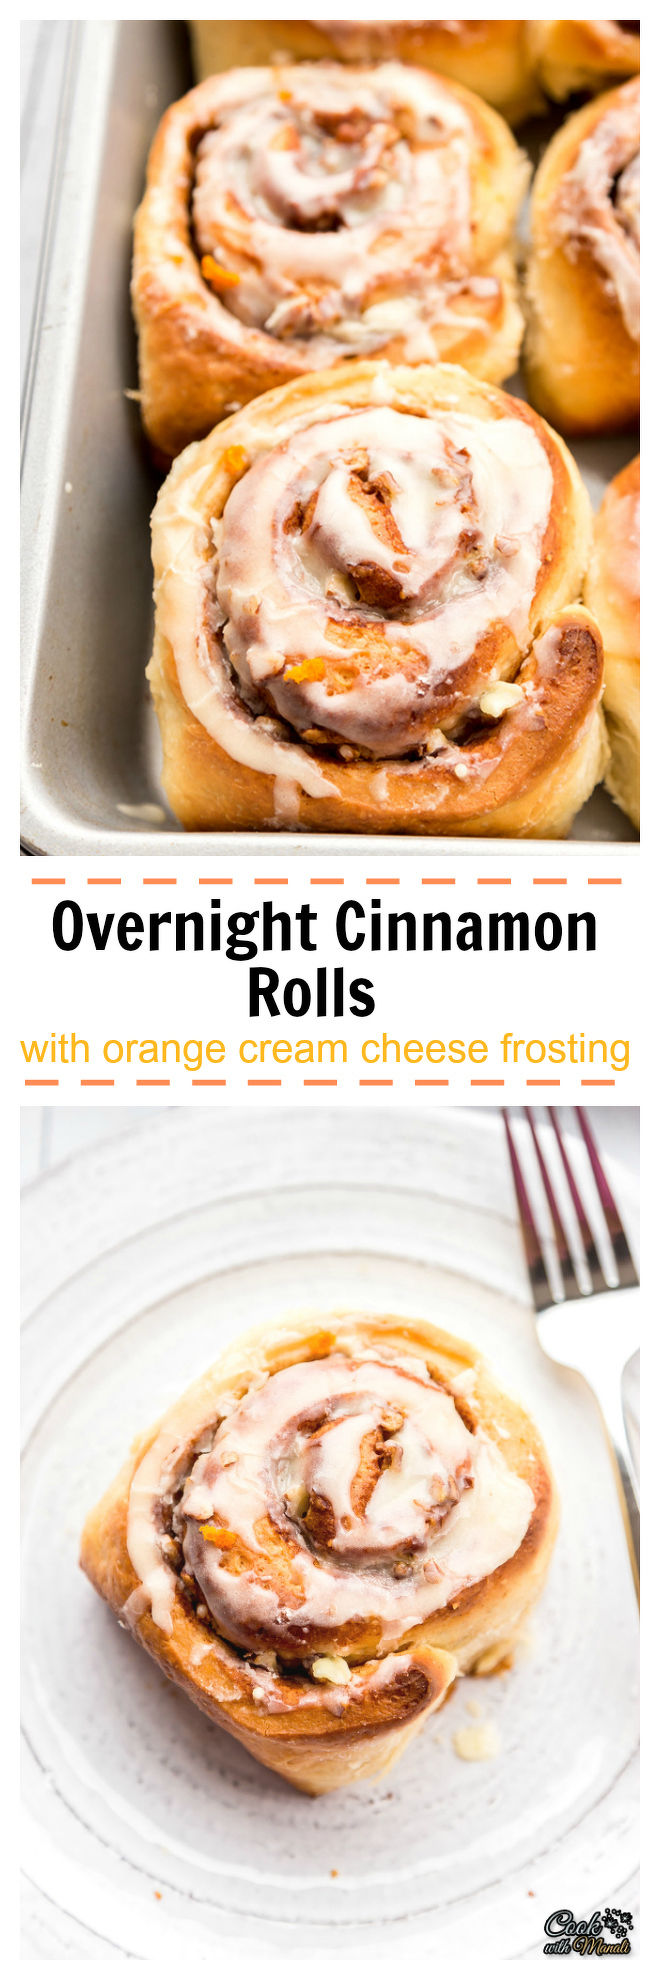 Overnight Cinnamon Rolls - Cook With Manali